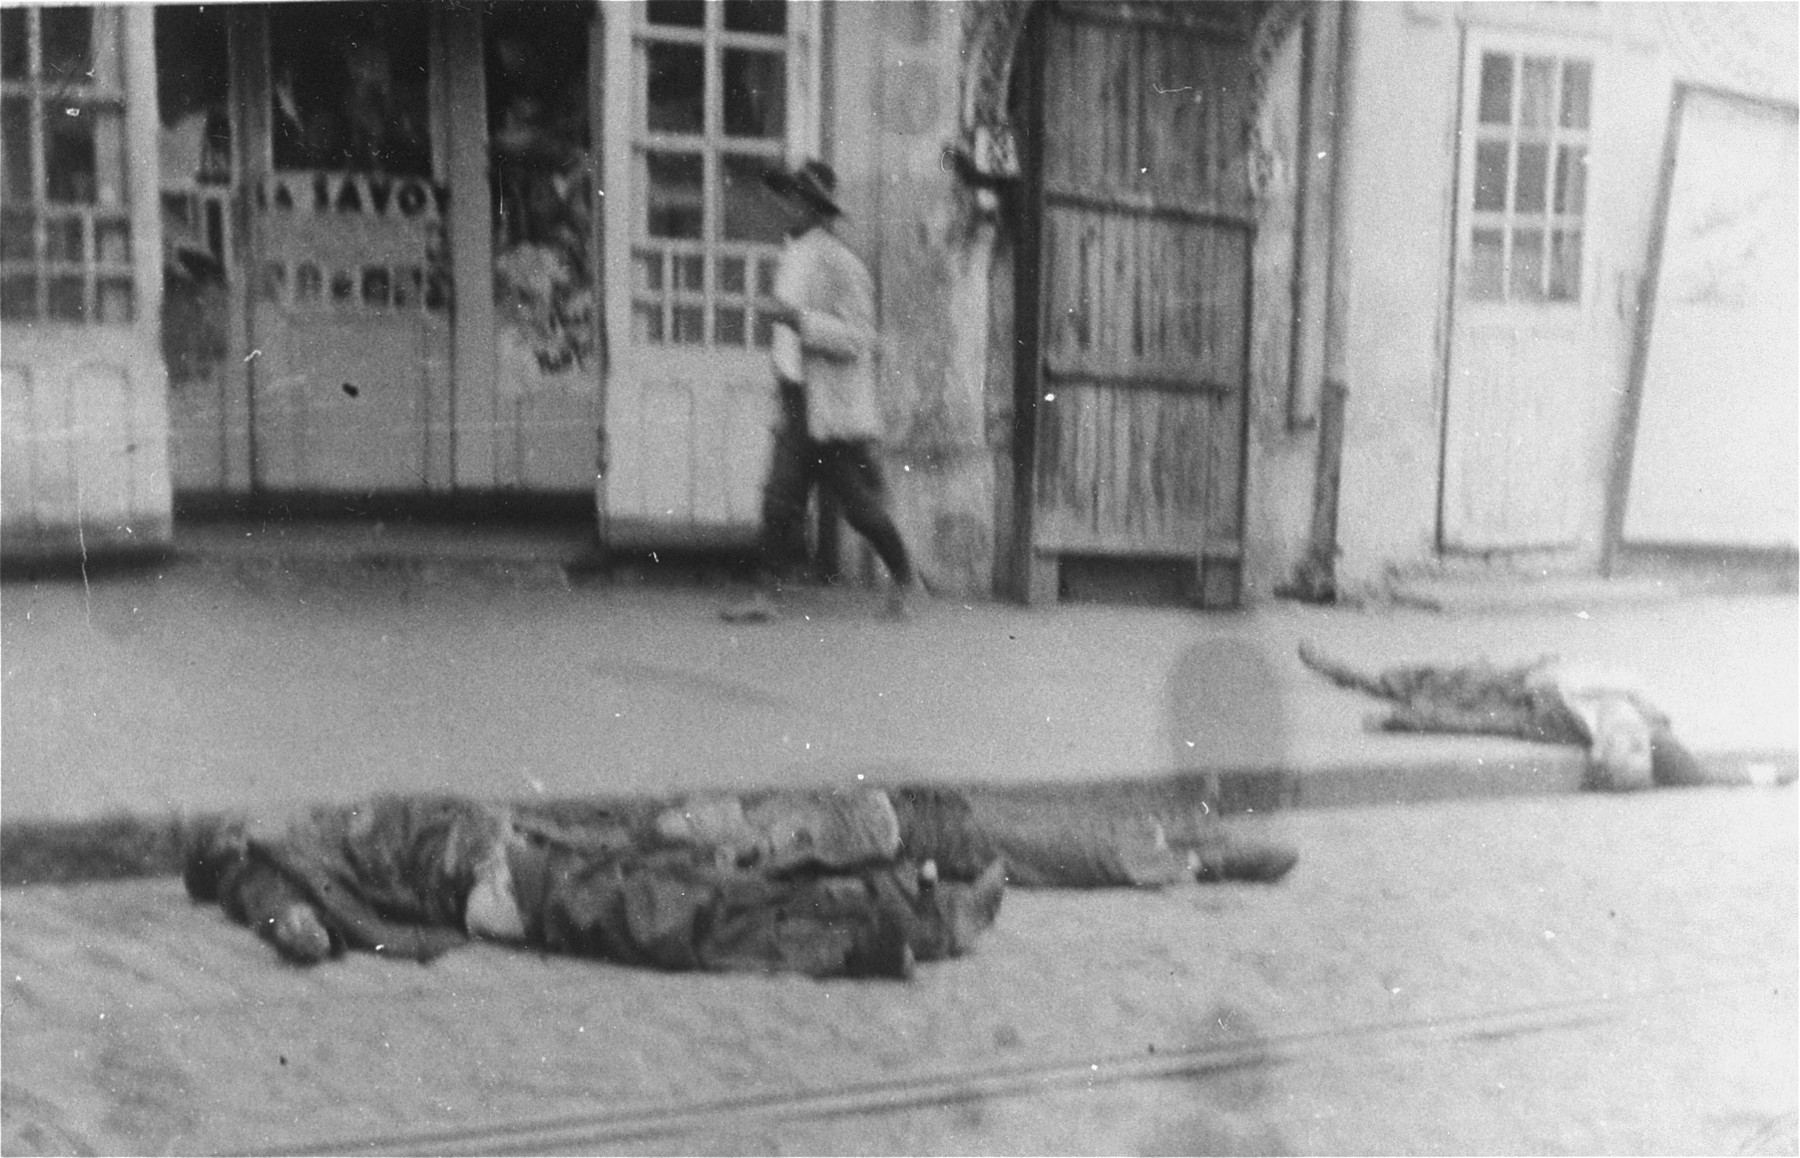 A Romanian civilian walks past the bodies of Jews killed on Cuza Voda Street during the Iasi pogrom.